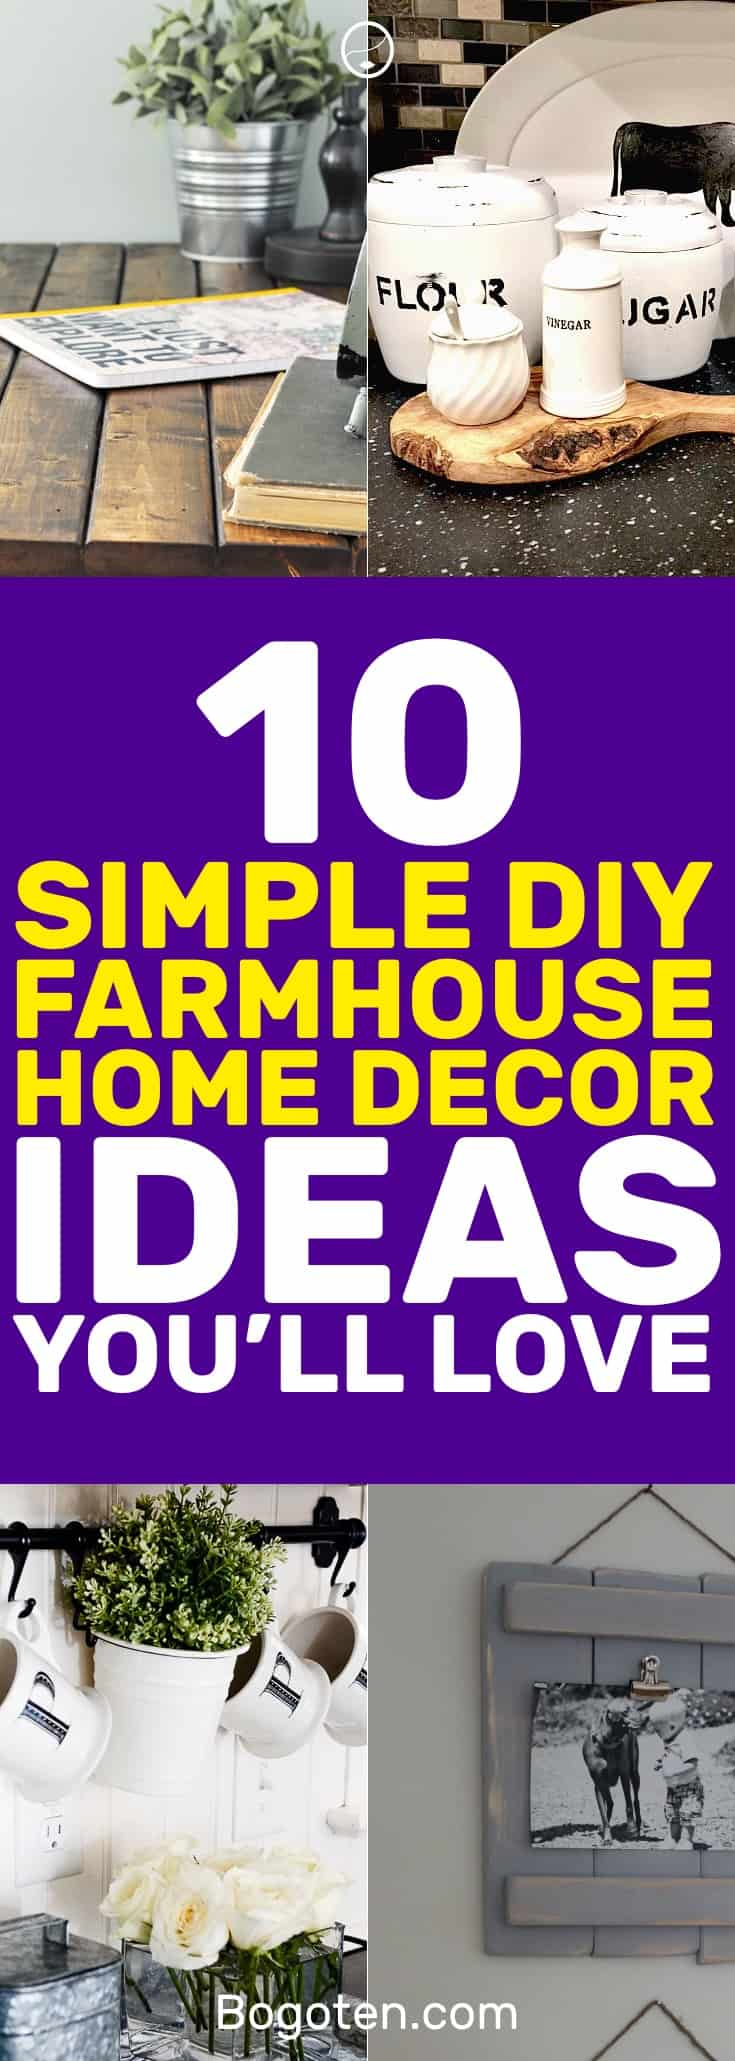 I've been looking for good looking farmhouse home decor ideas and here are some great ones. Very easy and DIY! #HomeDecor #DIY